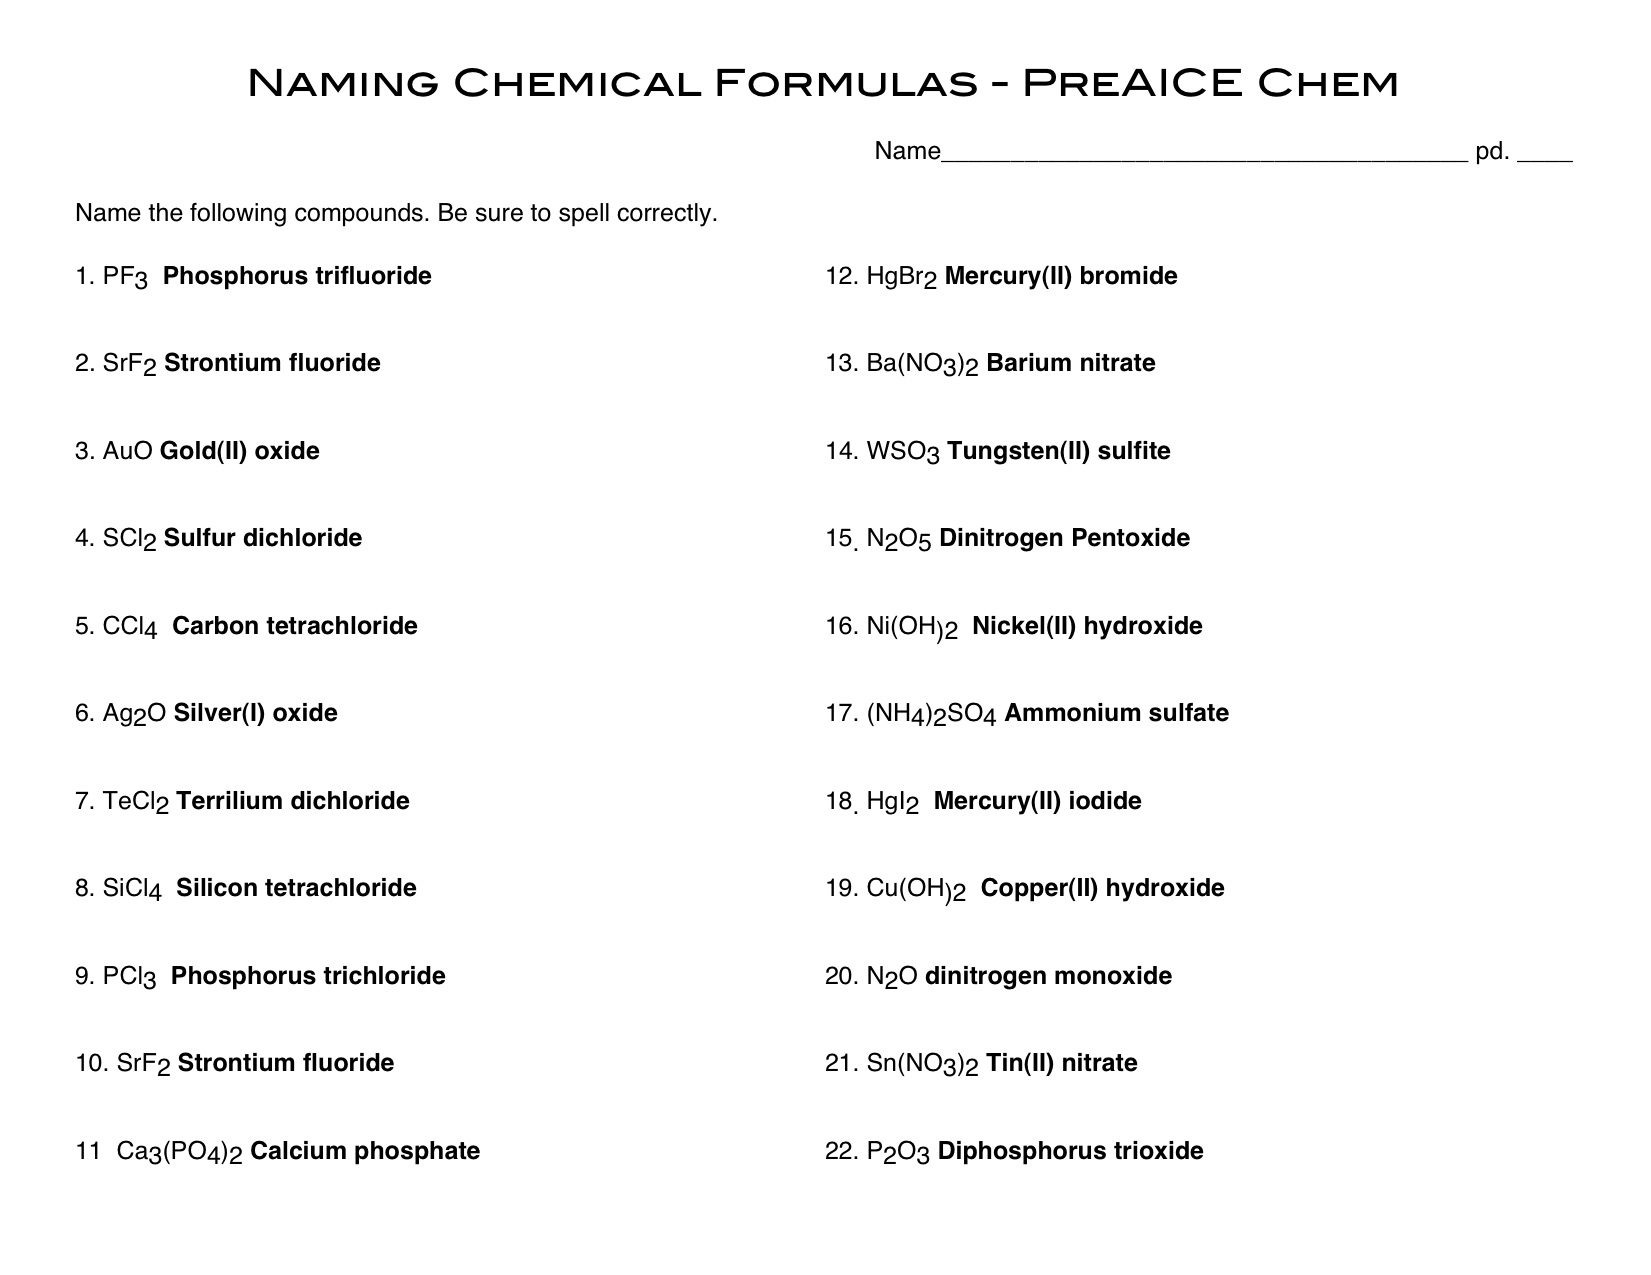 31 Naming Ionic Compounds Worksheet Answers